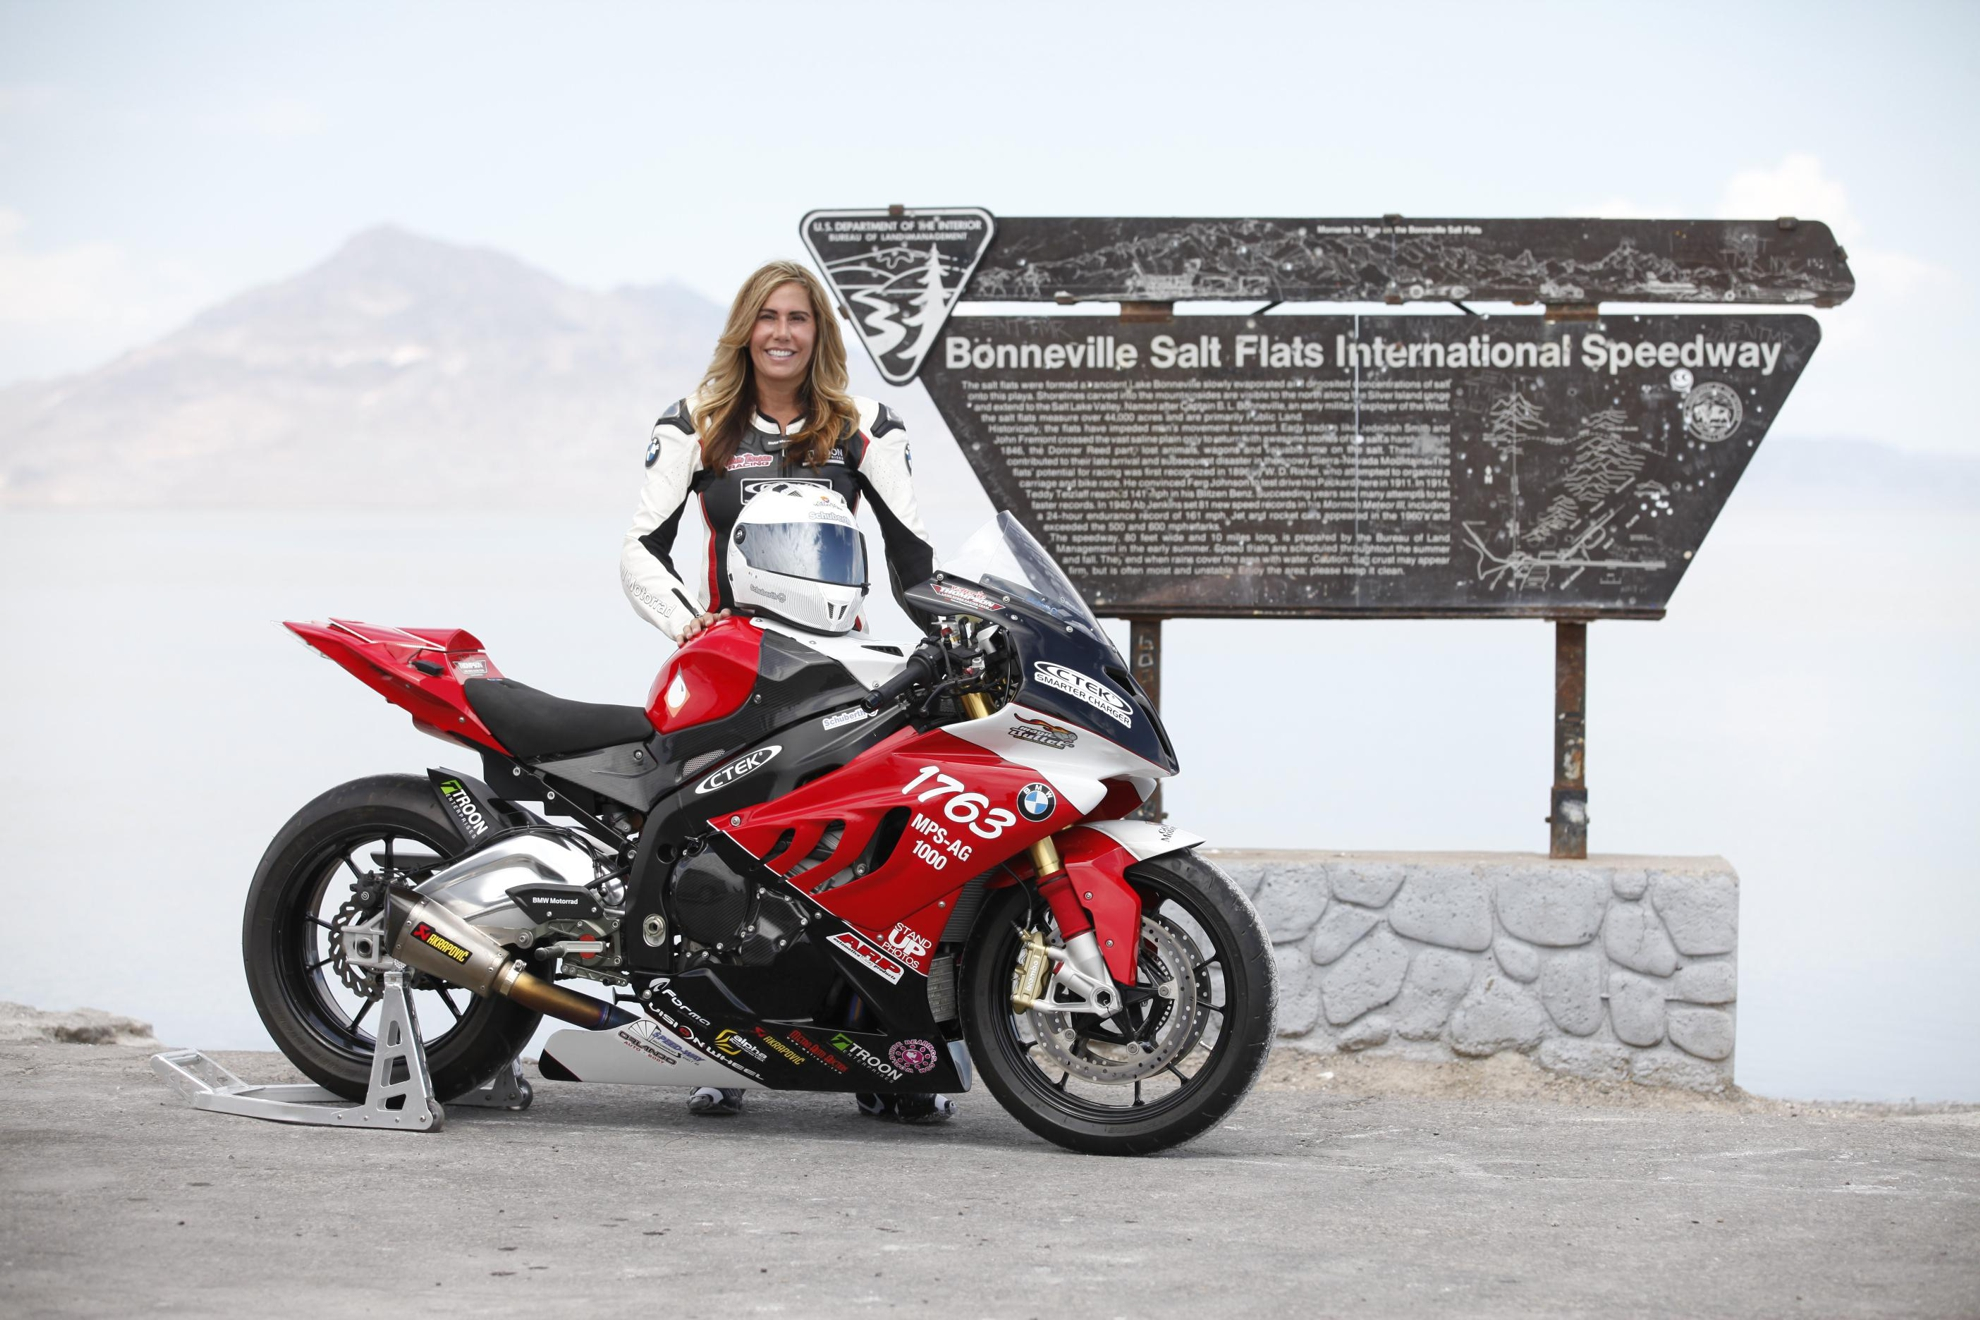 Land Speed Record >> NEW MOTORCYCLE LAND SPEED RECORD AT BONNEVILLE